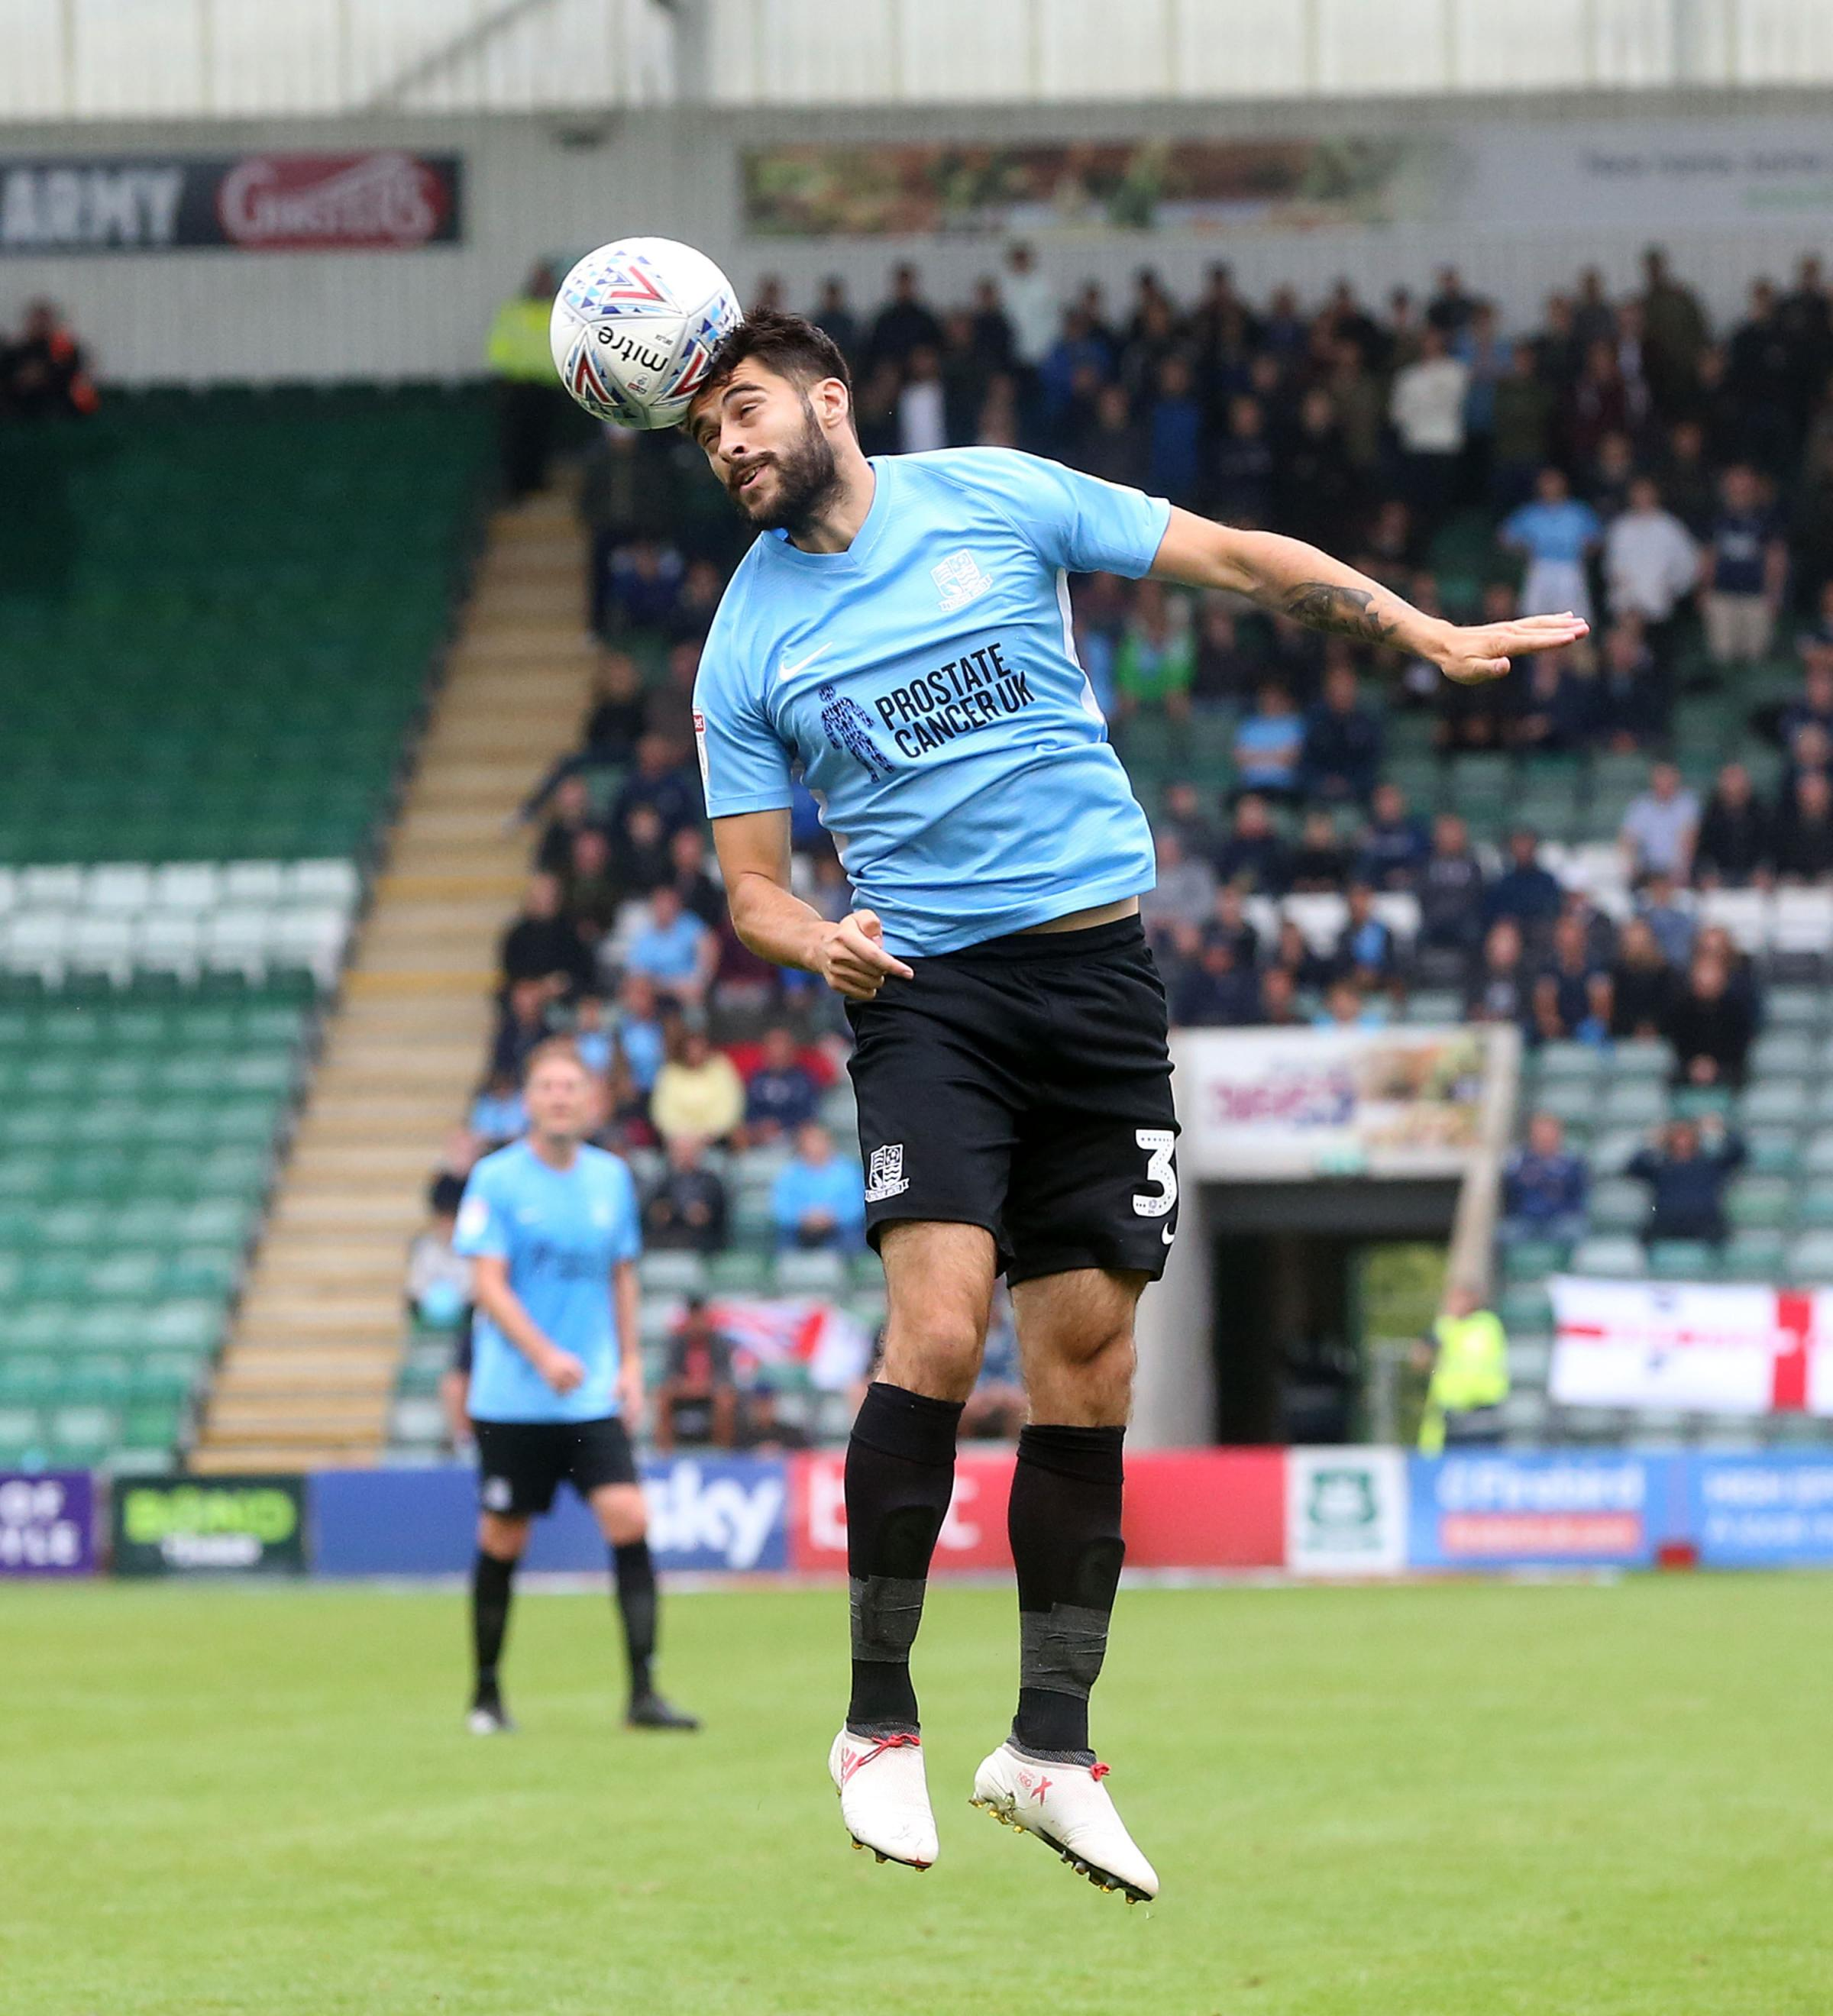 Eager to take his chance - Southend United defender Stephen Hendrie